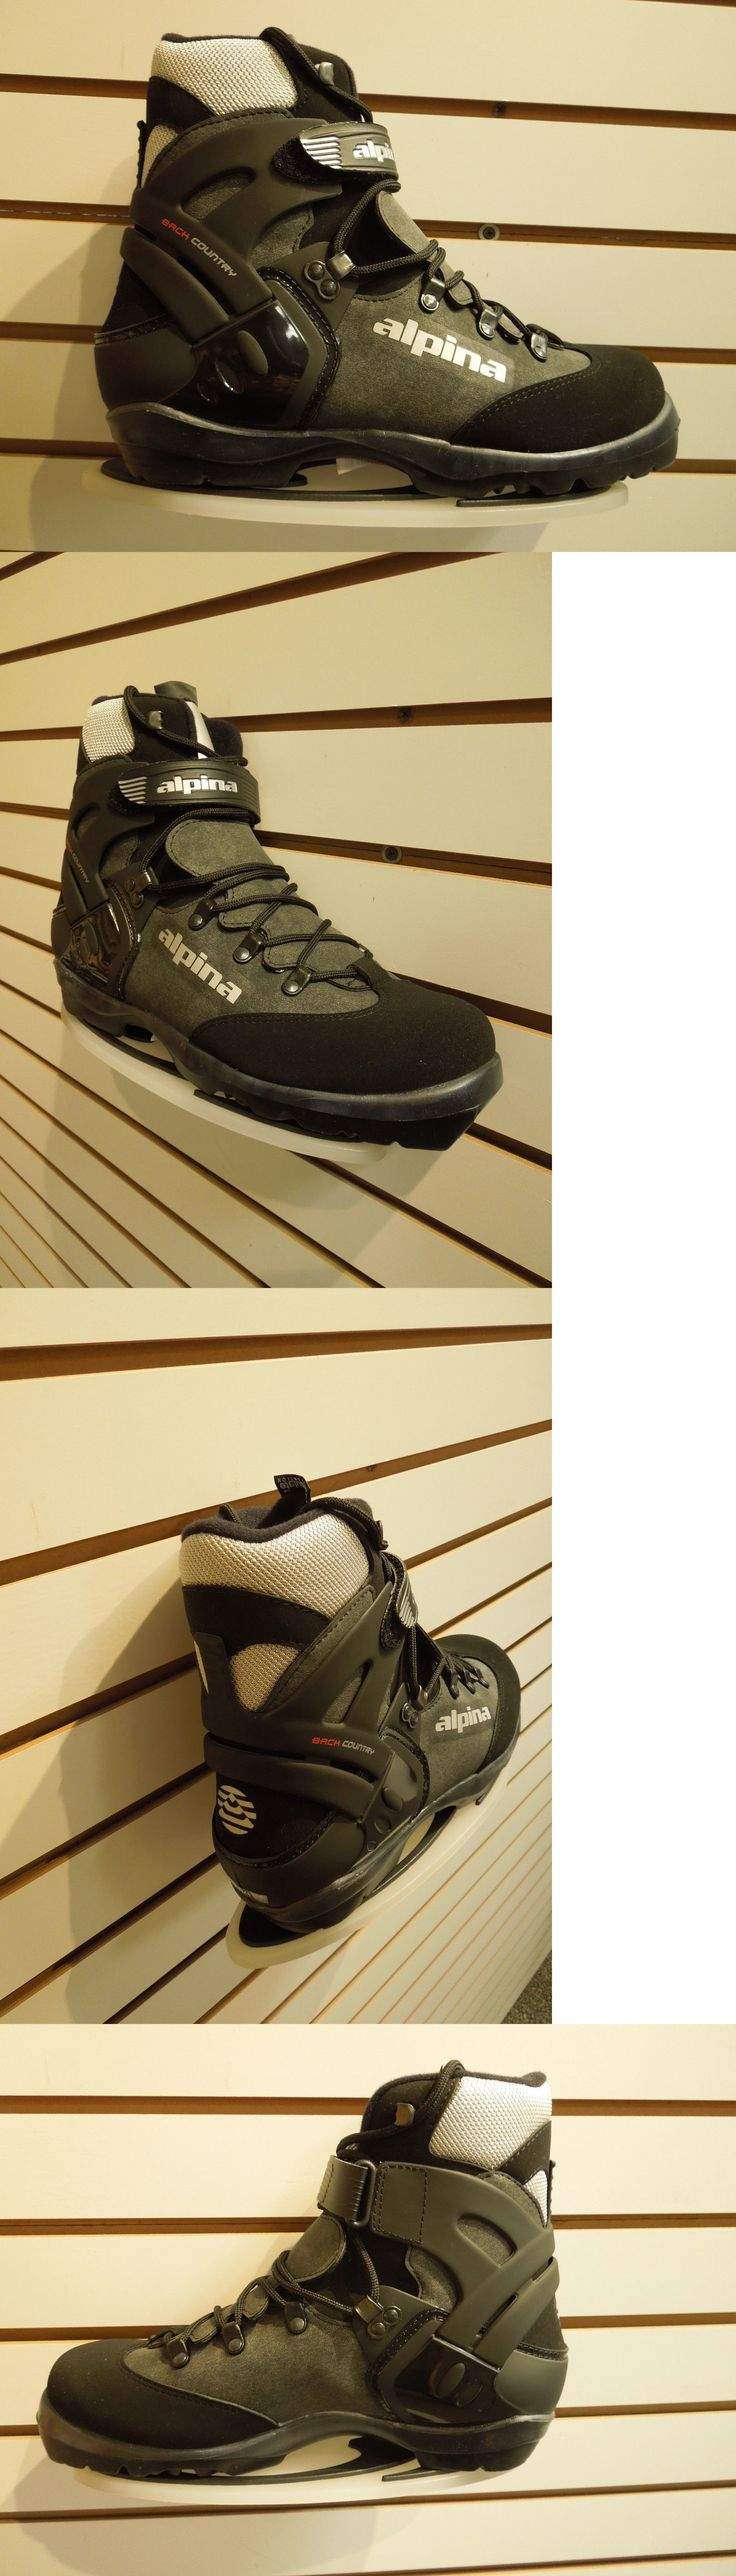 Boots 36266: Alpina Bc 1550 Cross Country Ski Boot Nnn Bc Size 41 New! -> BUY IT NOW ONLY: $99 on eBay!